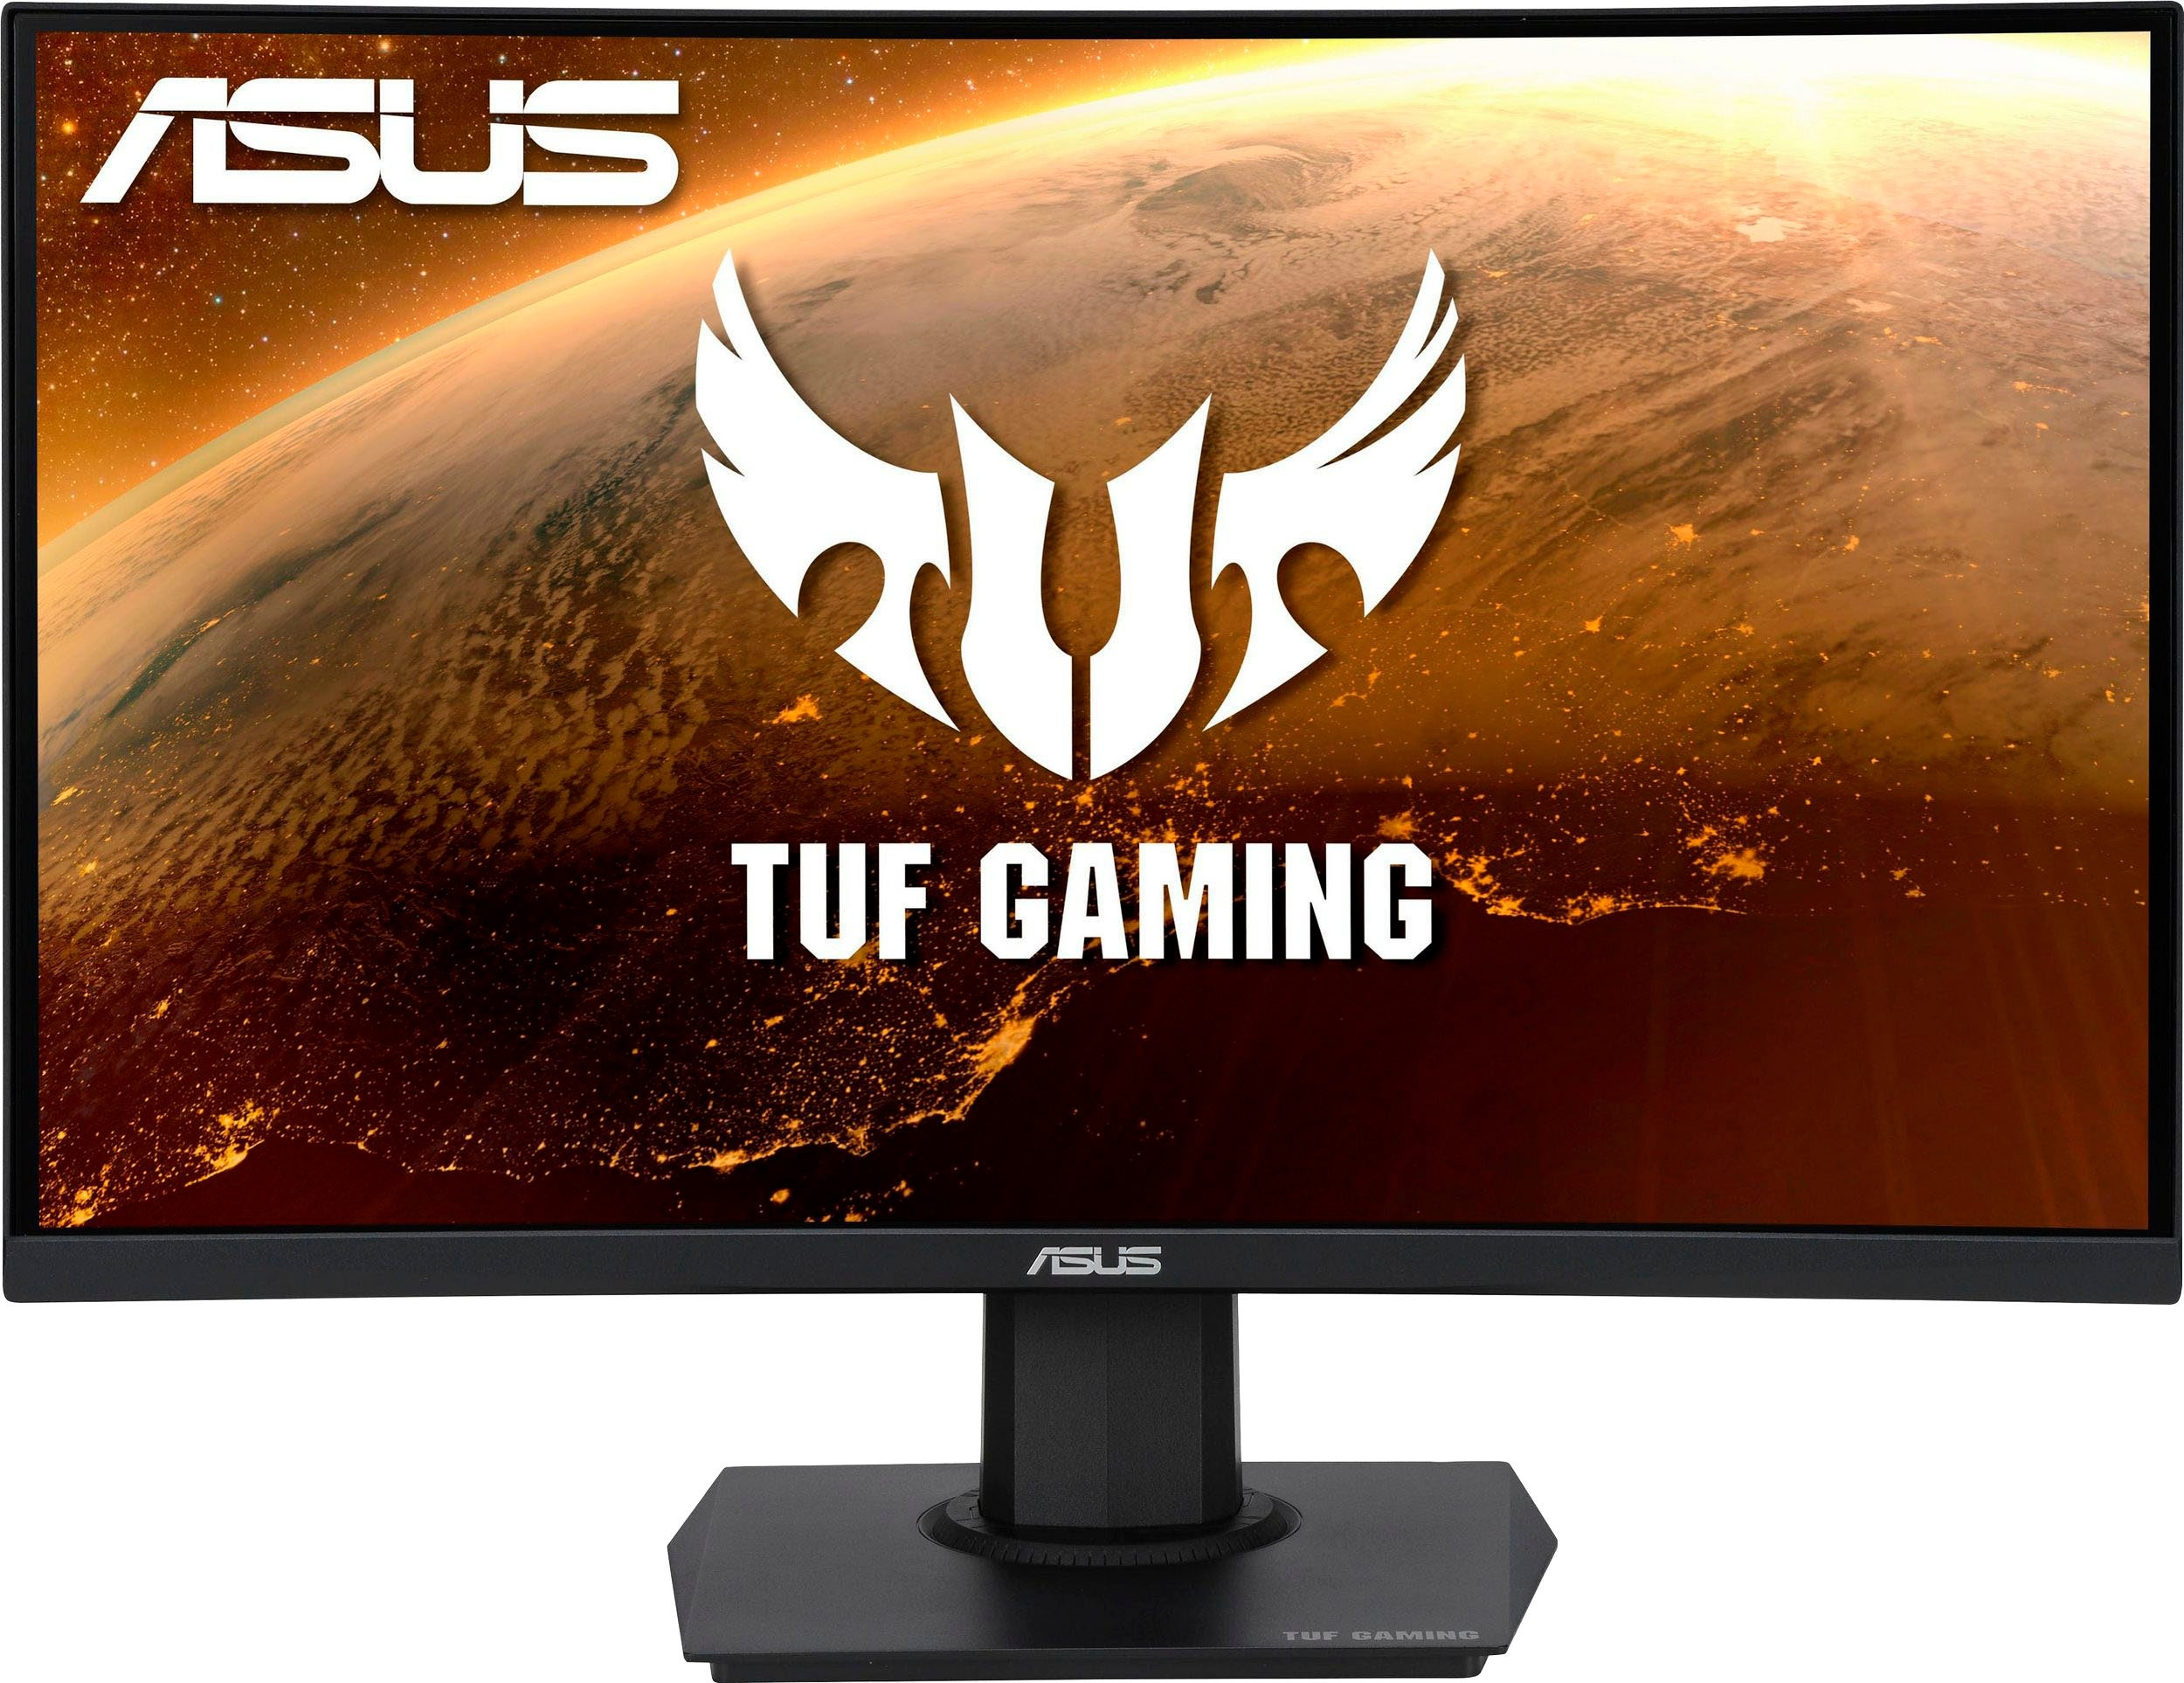 Asus curved-gaming-monitor VG24VQE, 59,94 cm / 23,6